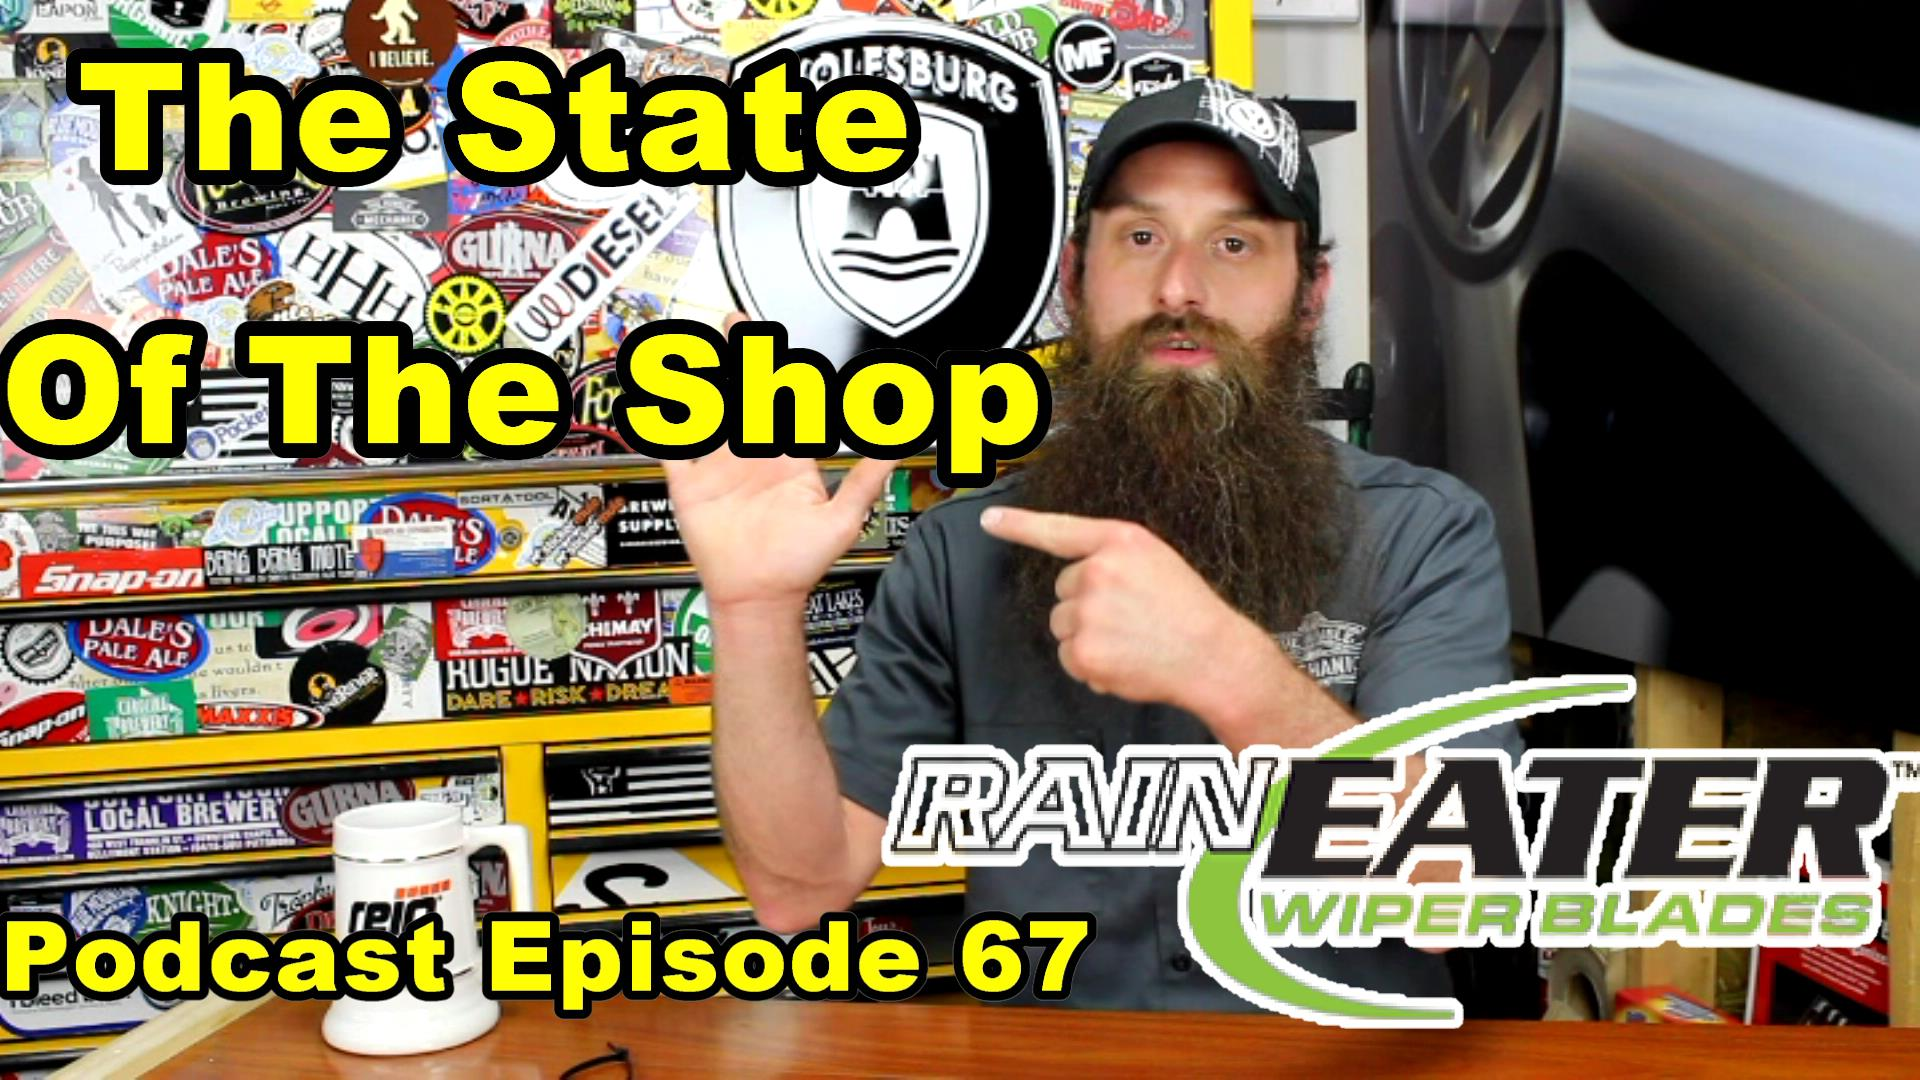 The State Of The Shop ~ audio Podcast Episode 67